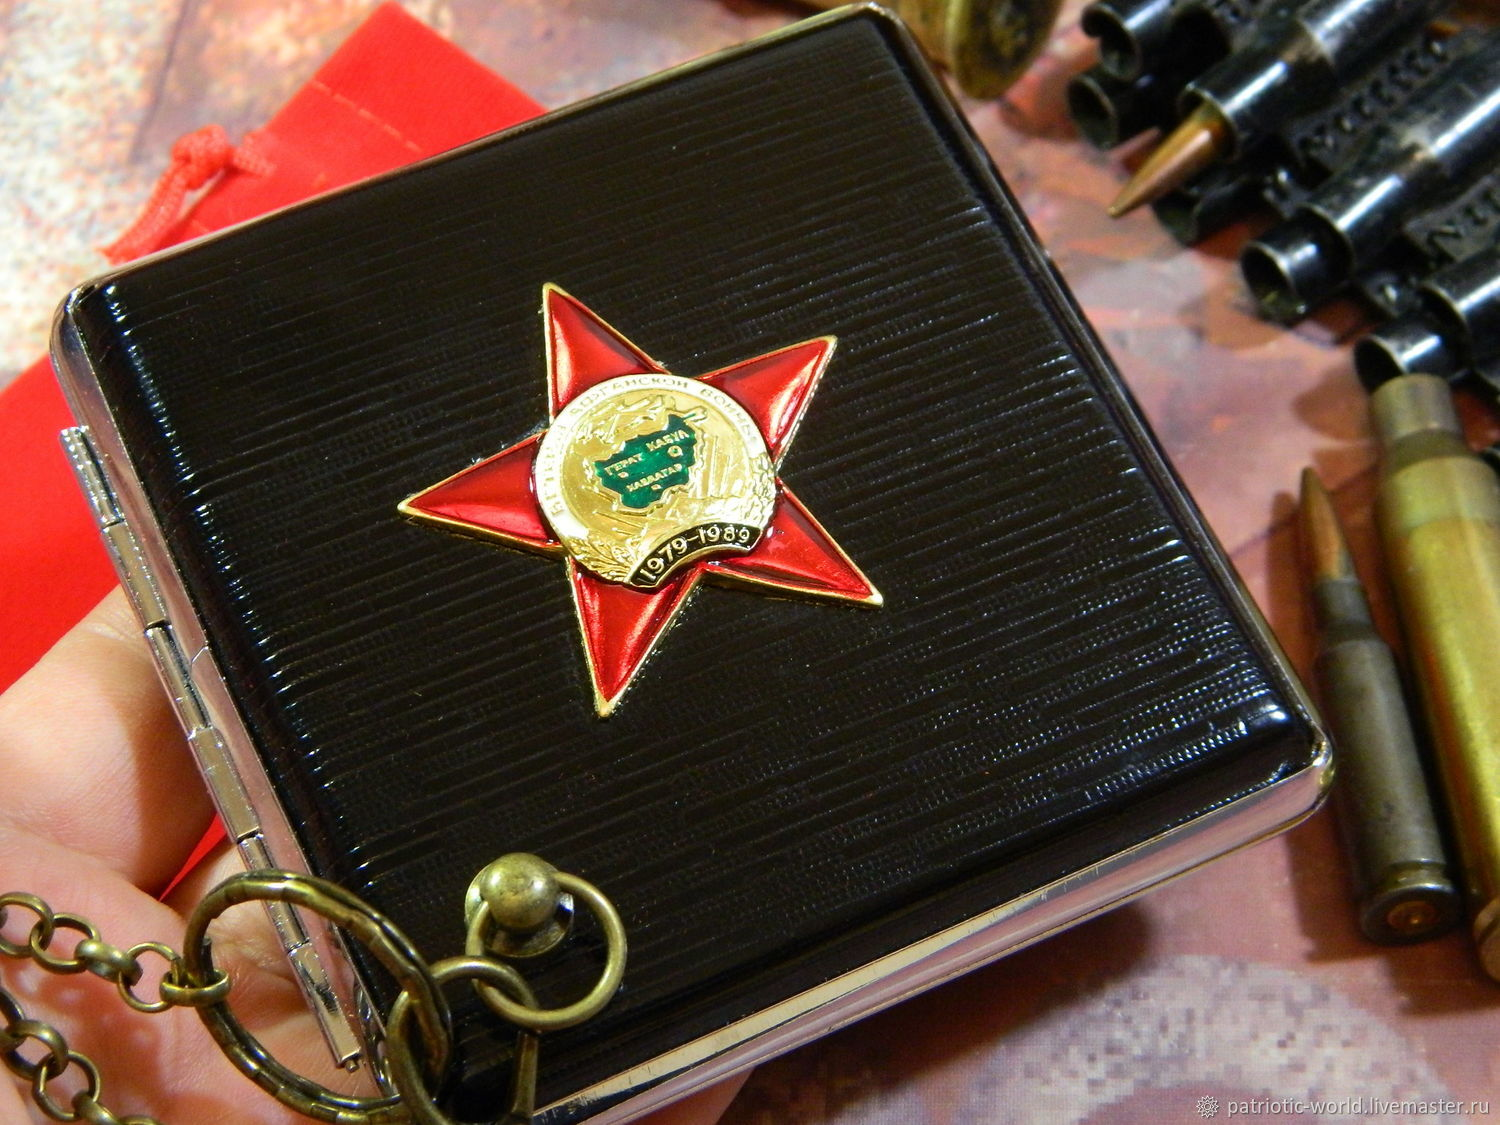 Cigarette case for 20 cigarettes with symbols of the USSR ' veteran of AFGHANISTAN', Cigarette cases, Saratov,  Фото №1